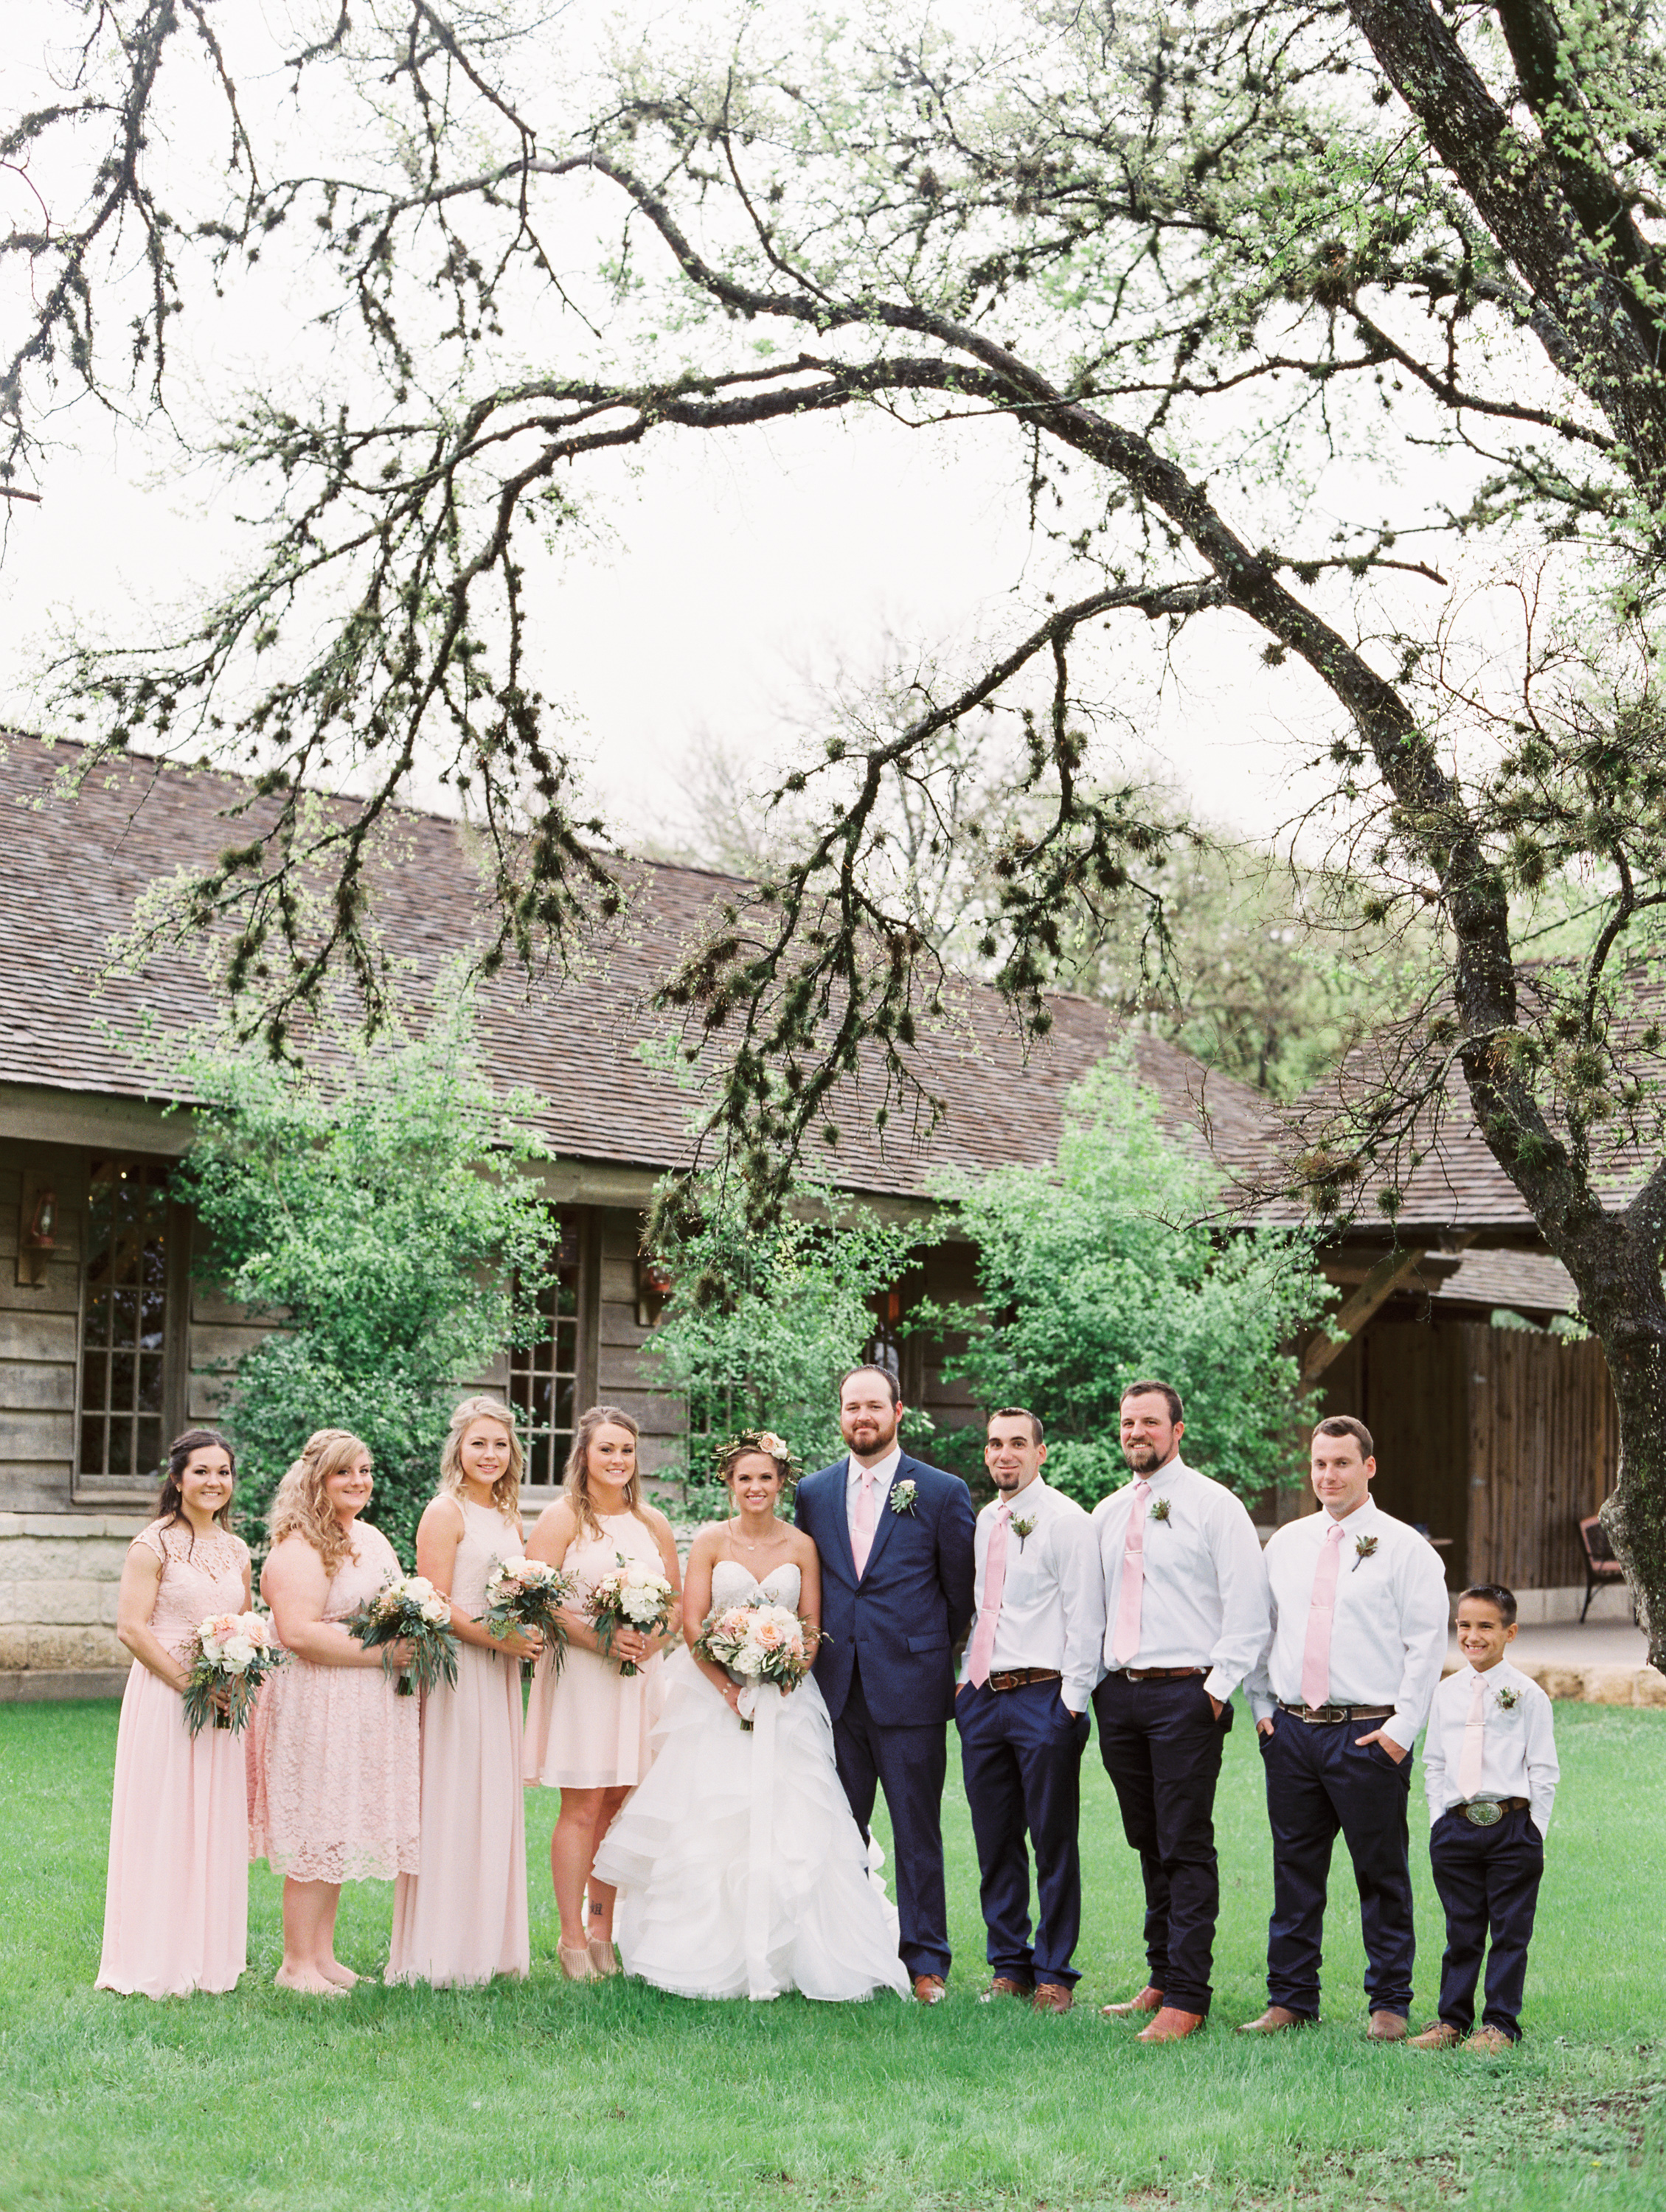 Hill Country Spring Wedding at Red Bud Hall | Austin Wedding Photographer | Film Wedding Photographer | Britni Dean Photography | Rainy Day Wedding Inspiration | blush and navy wedding